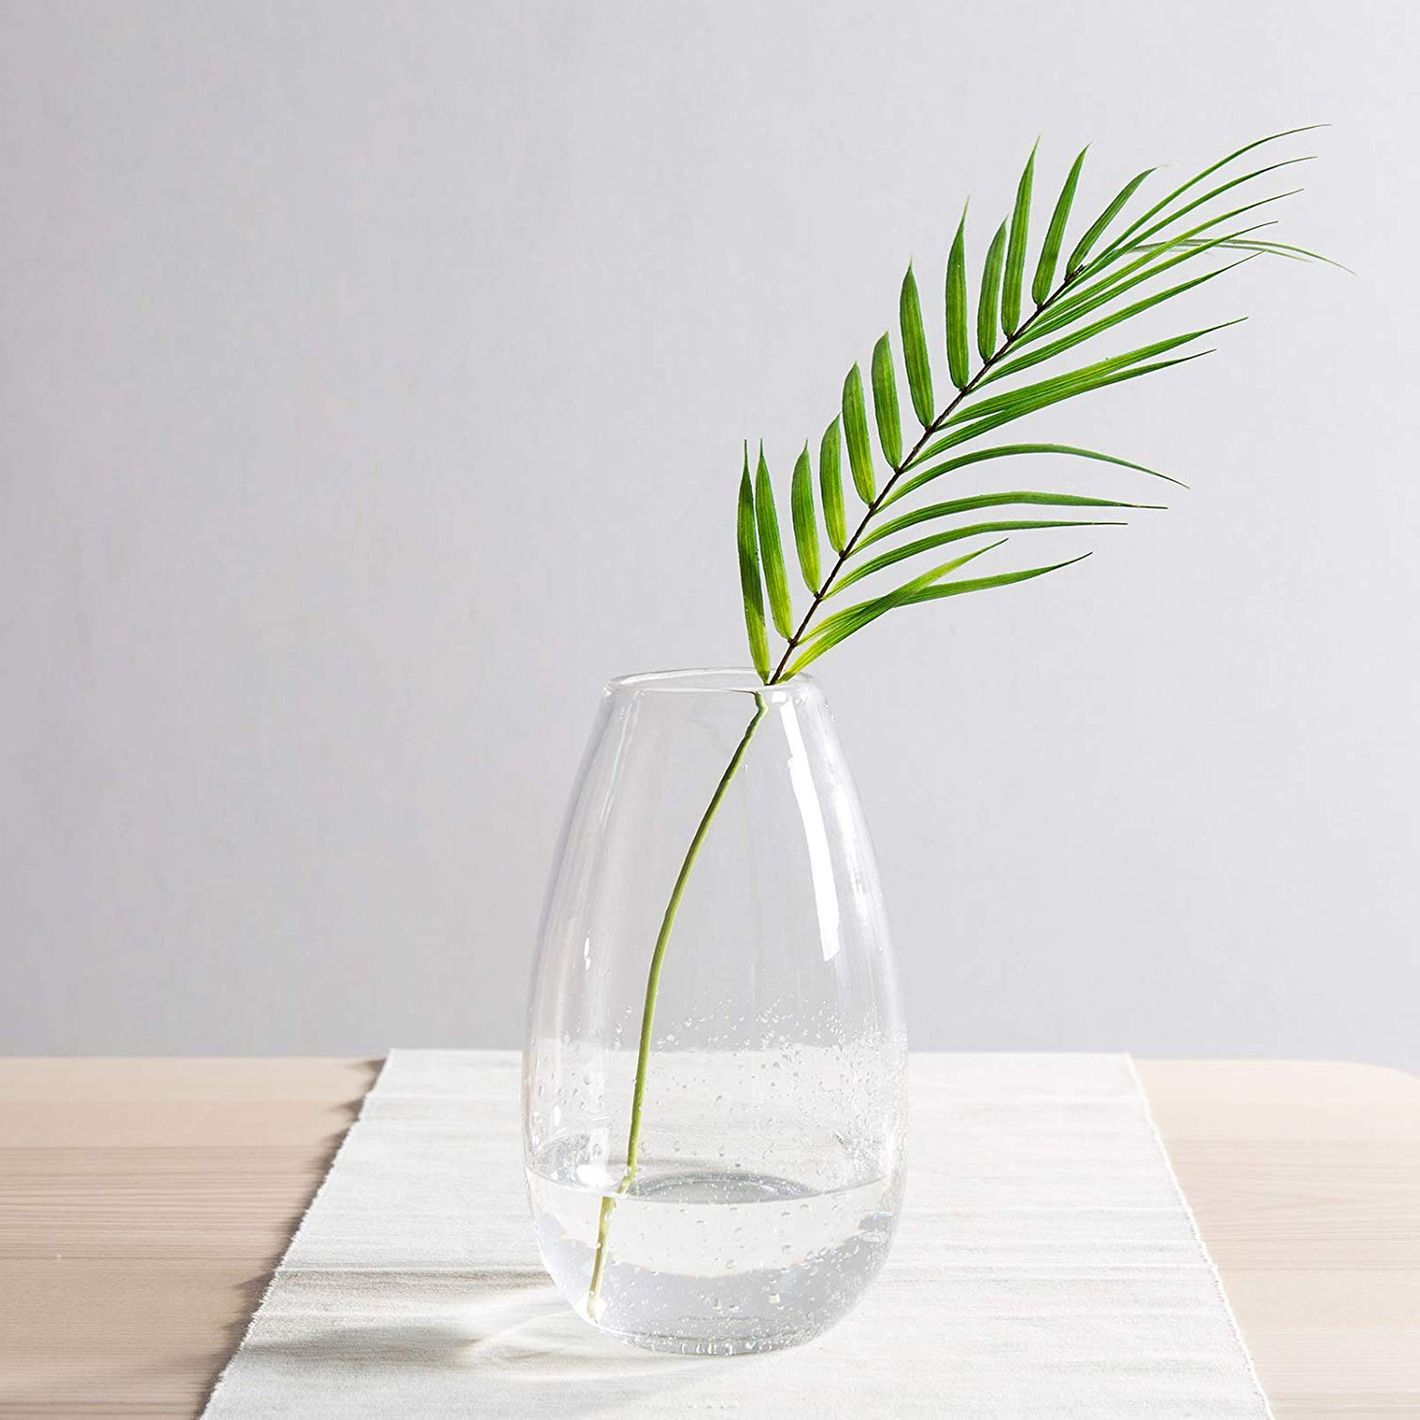 CASAMOTION Hand Blown Glass Vase & 17 Best Cheap (But Expensive-Looking) Vases 2019